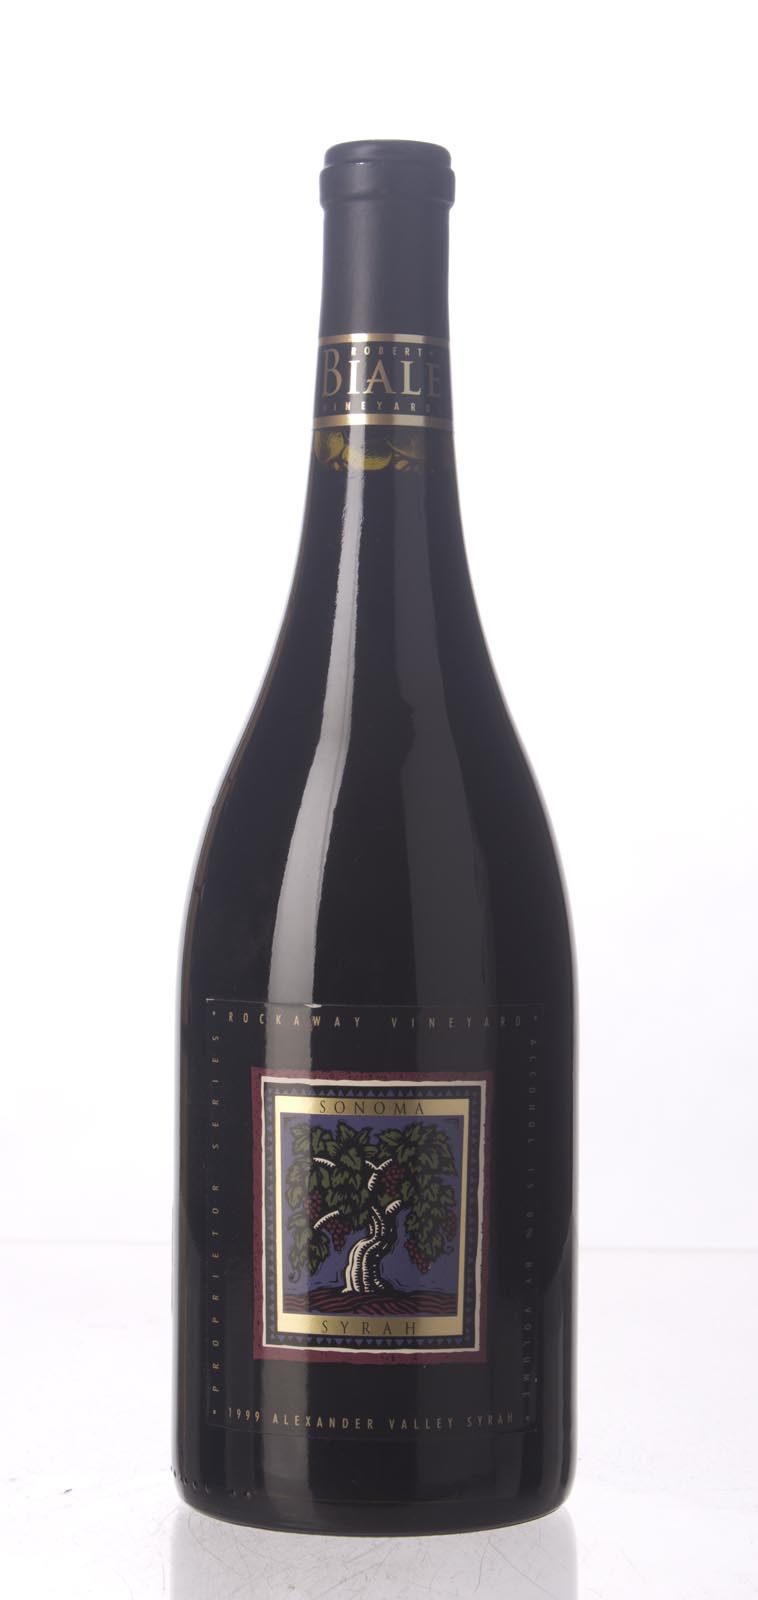 Robert Biale Syrah Rockaway Vineyard 1999, 750mL () from The BPW - Merchants of rare and fine wines.